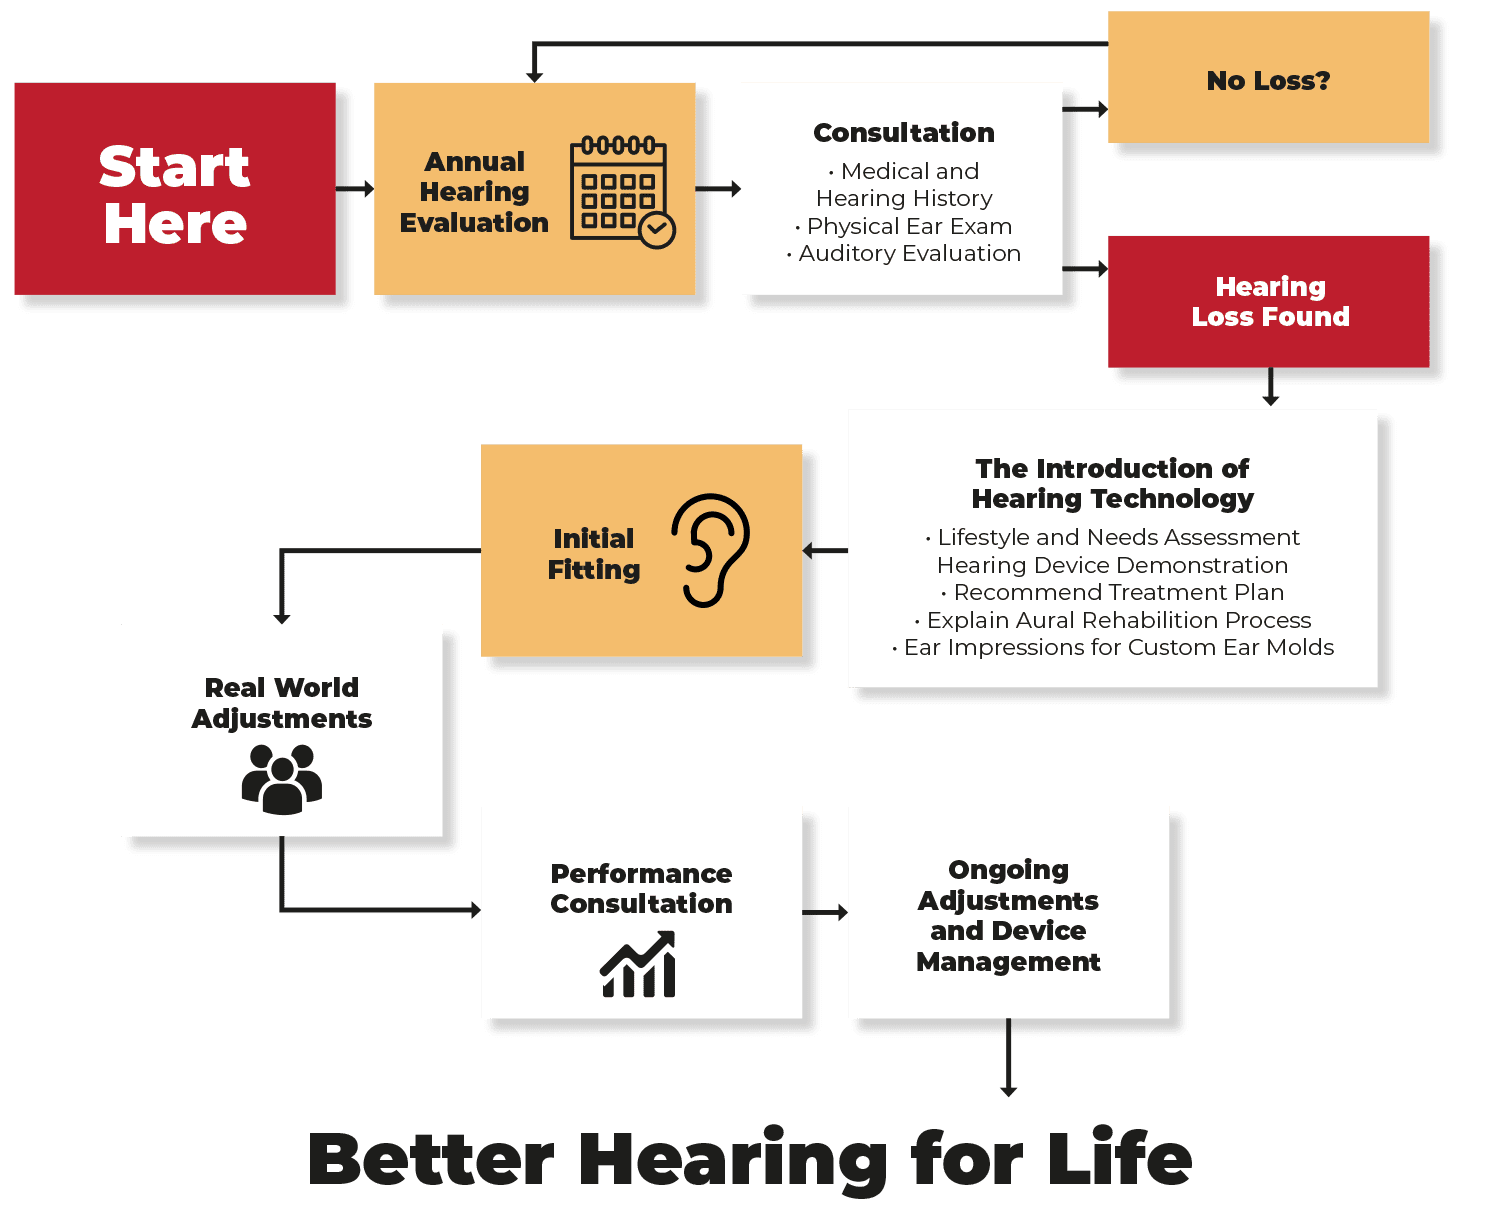 Journey to better hearing